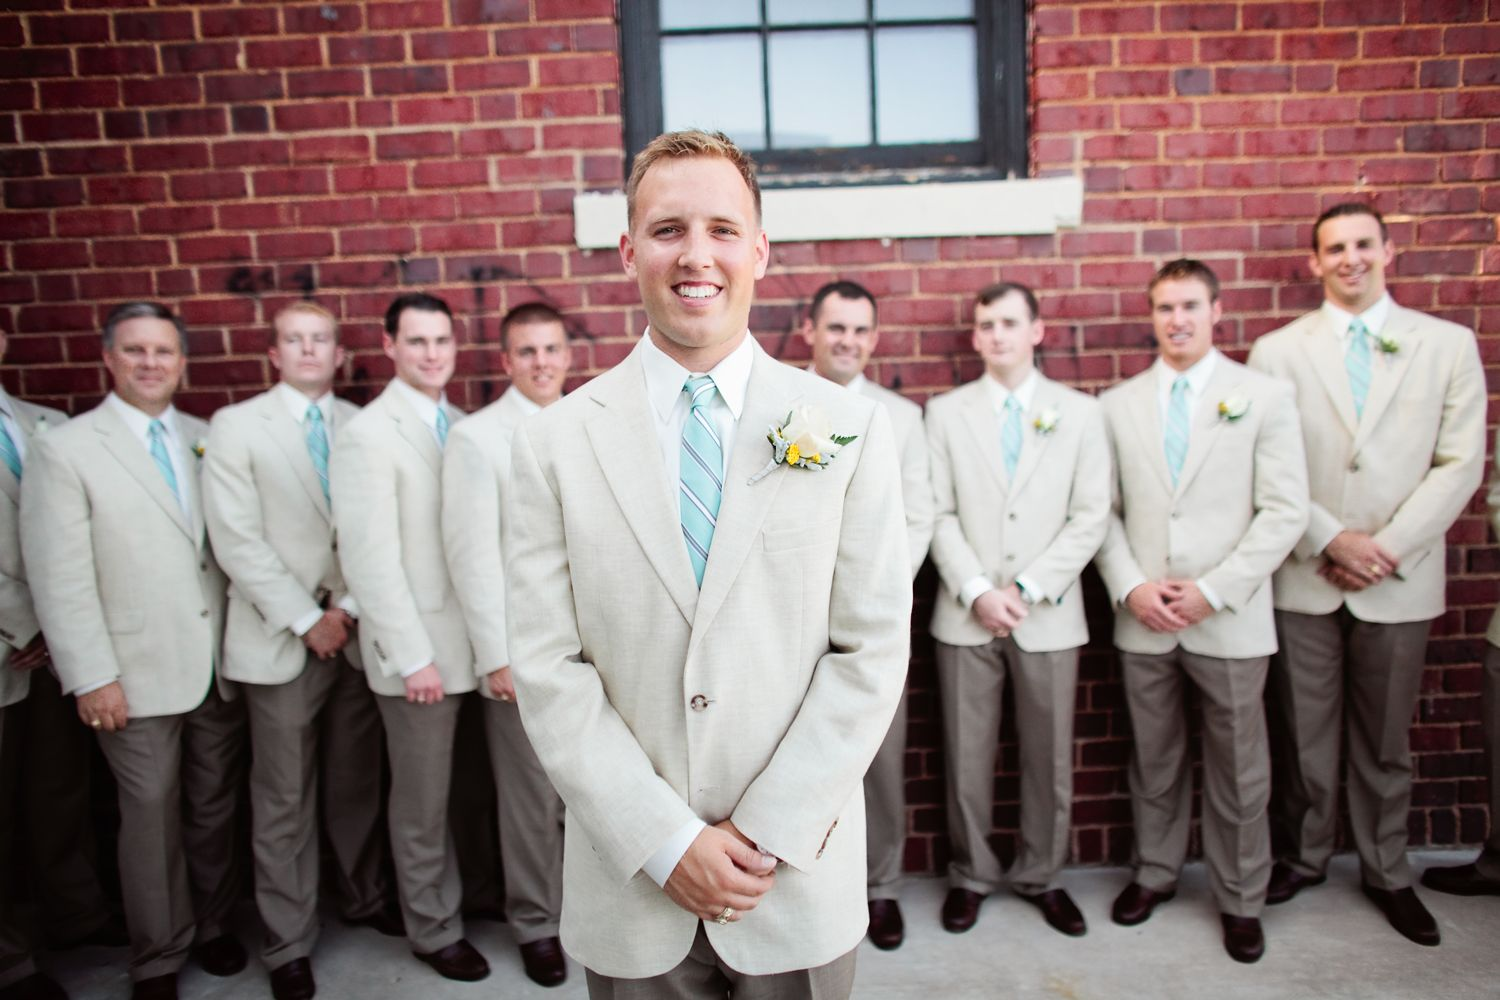 Gather your groomsmen at The Grace Museum for your wedding